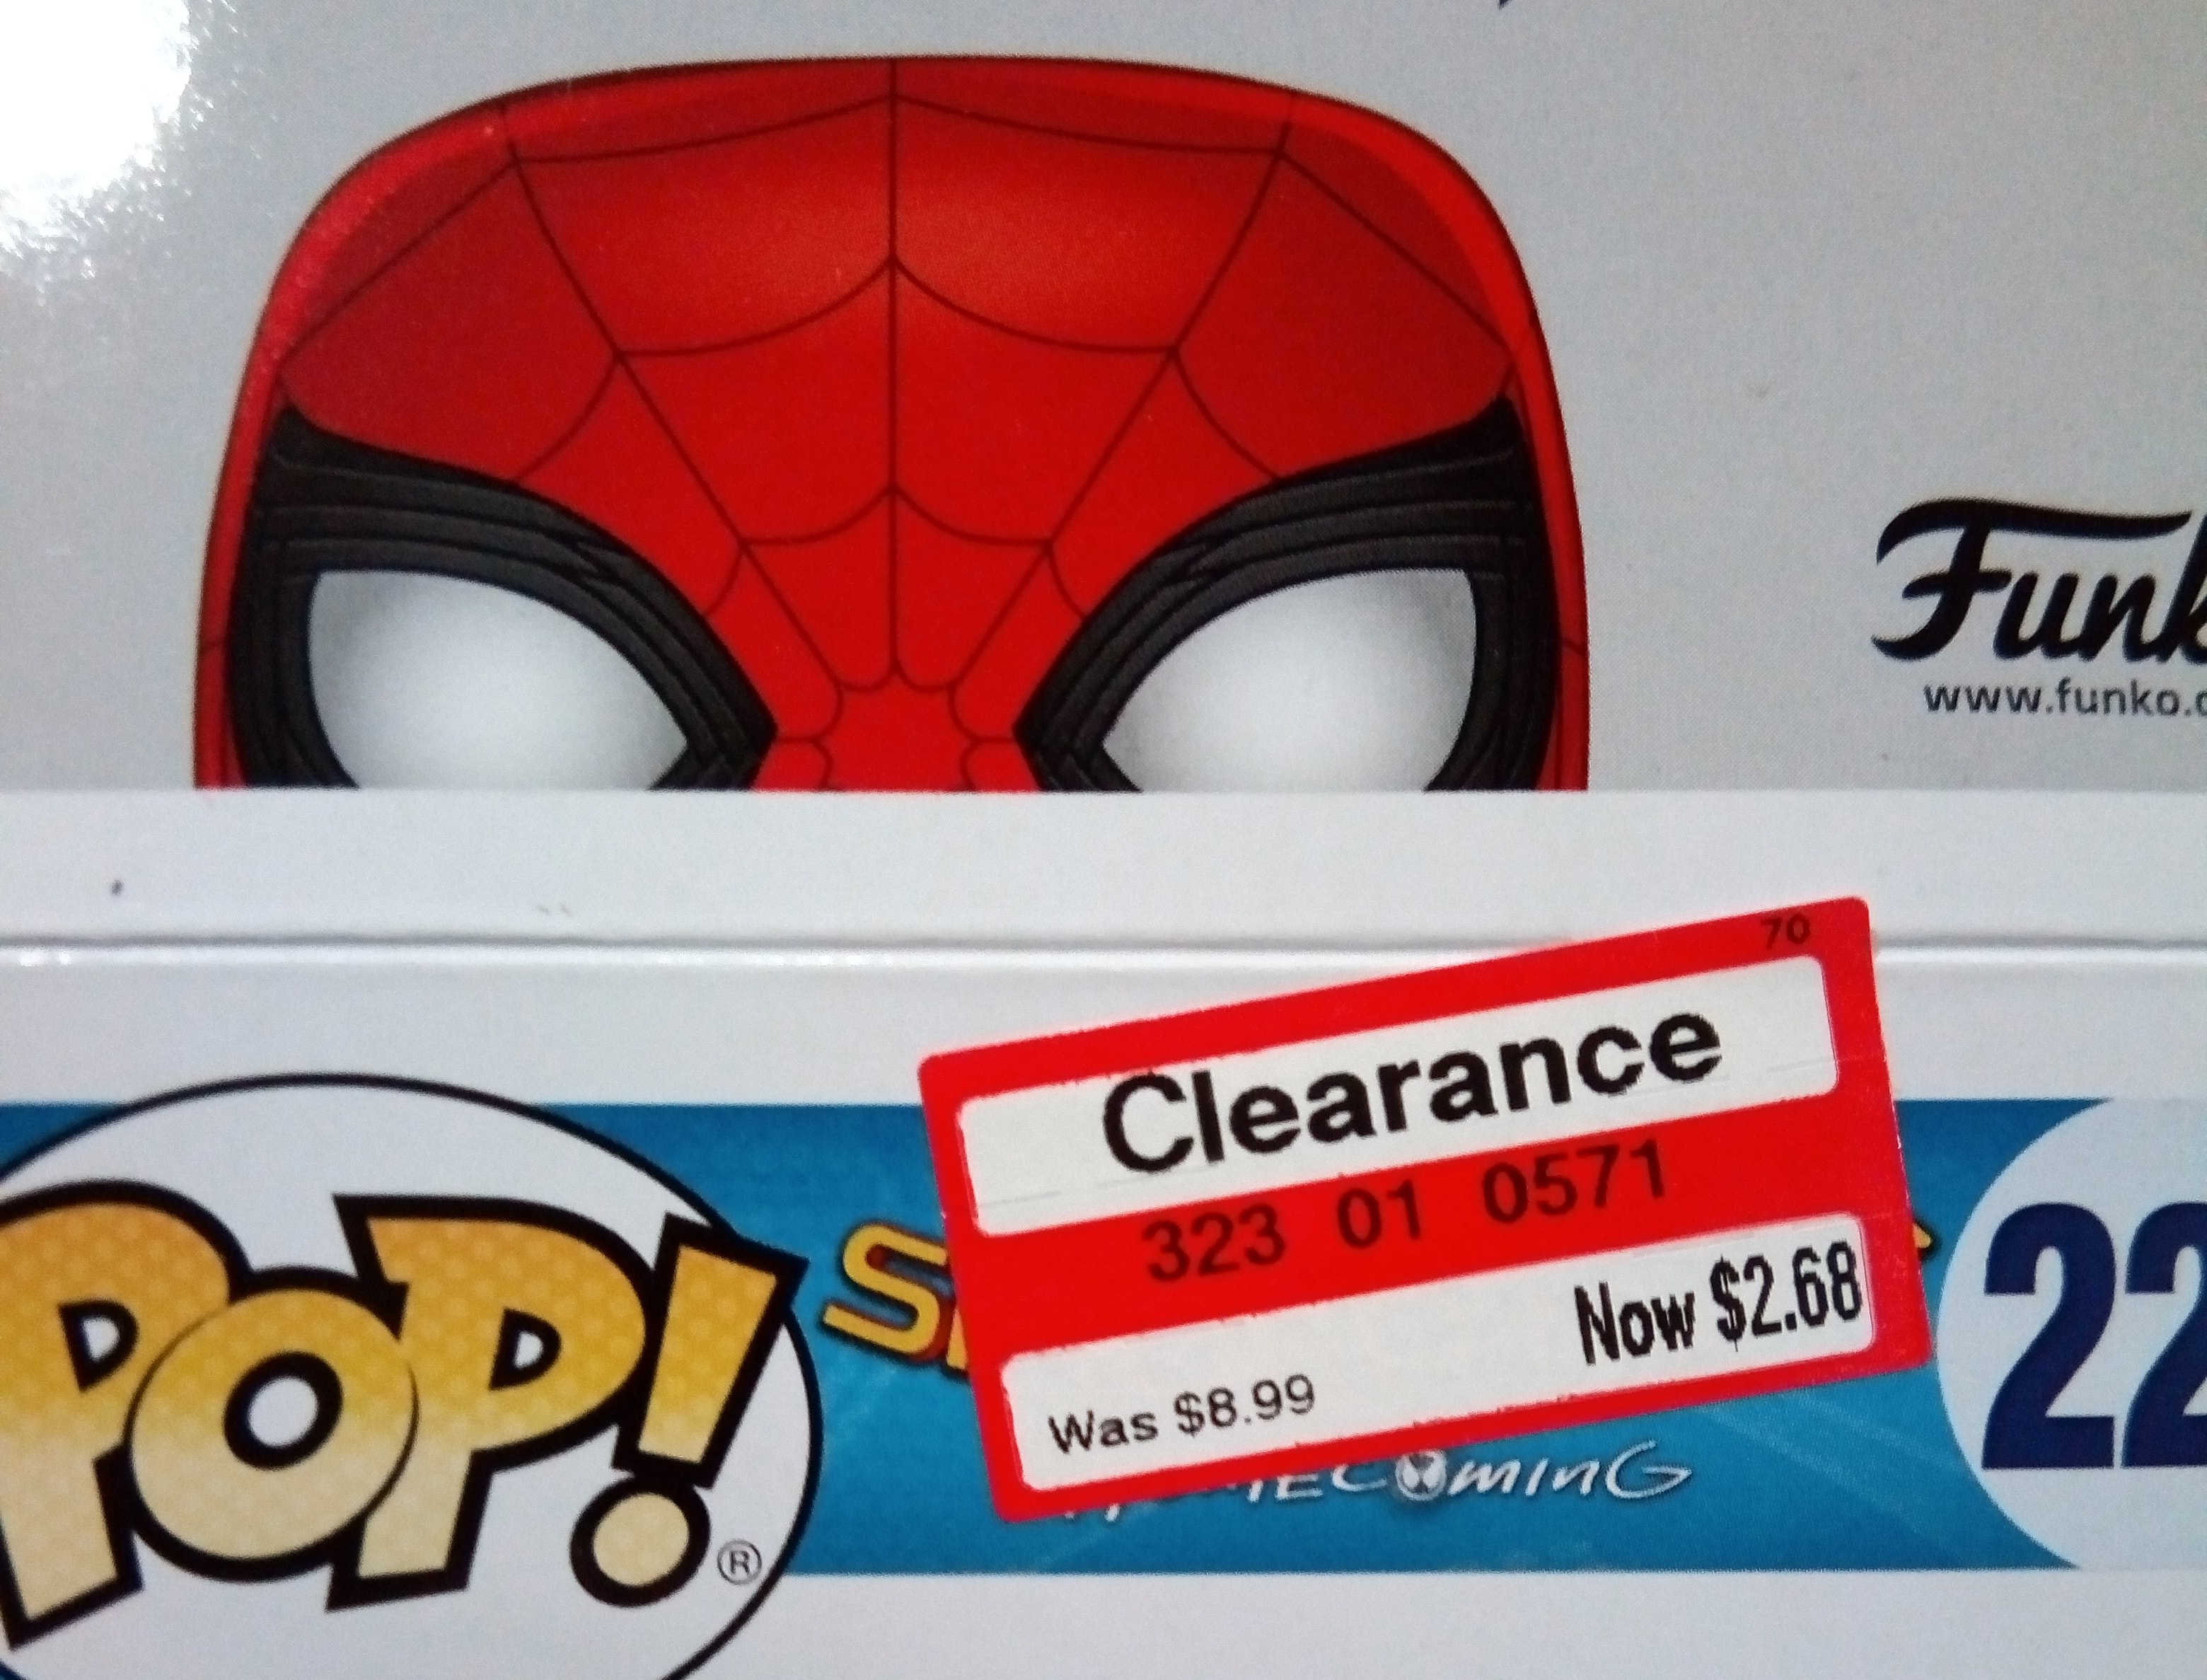 Spider-Man Homecoming Funko Pop! - $2.68 - Target B&M - YMMV